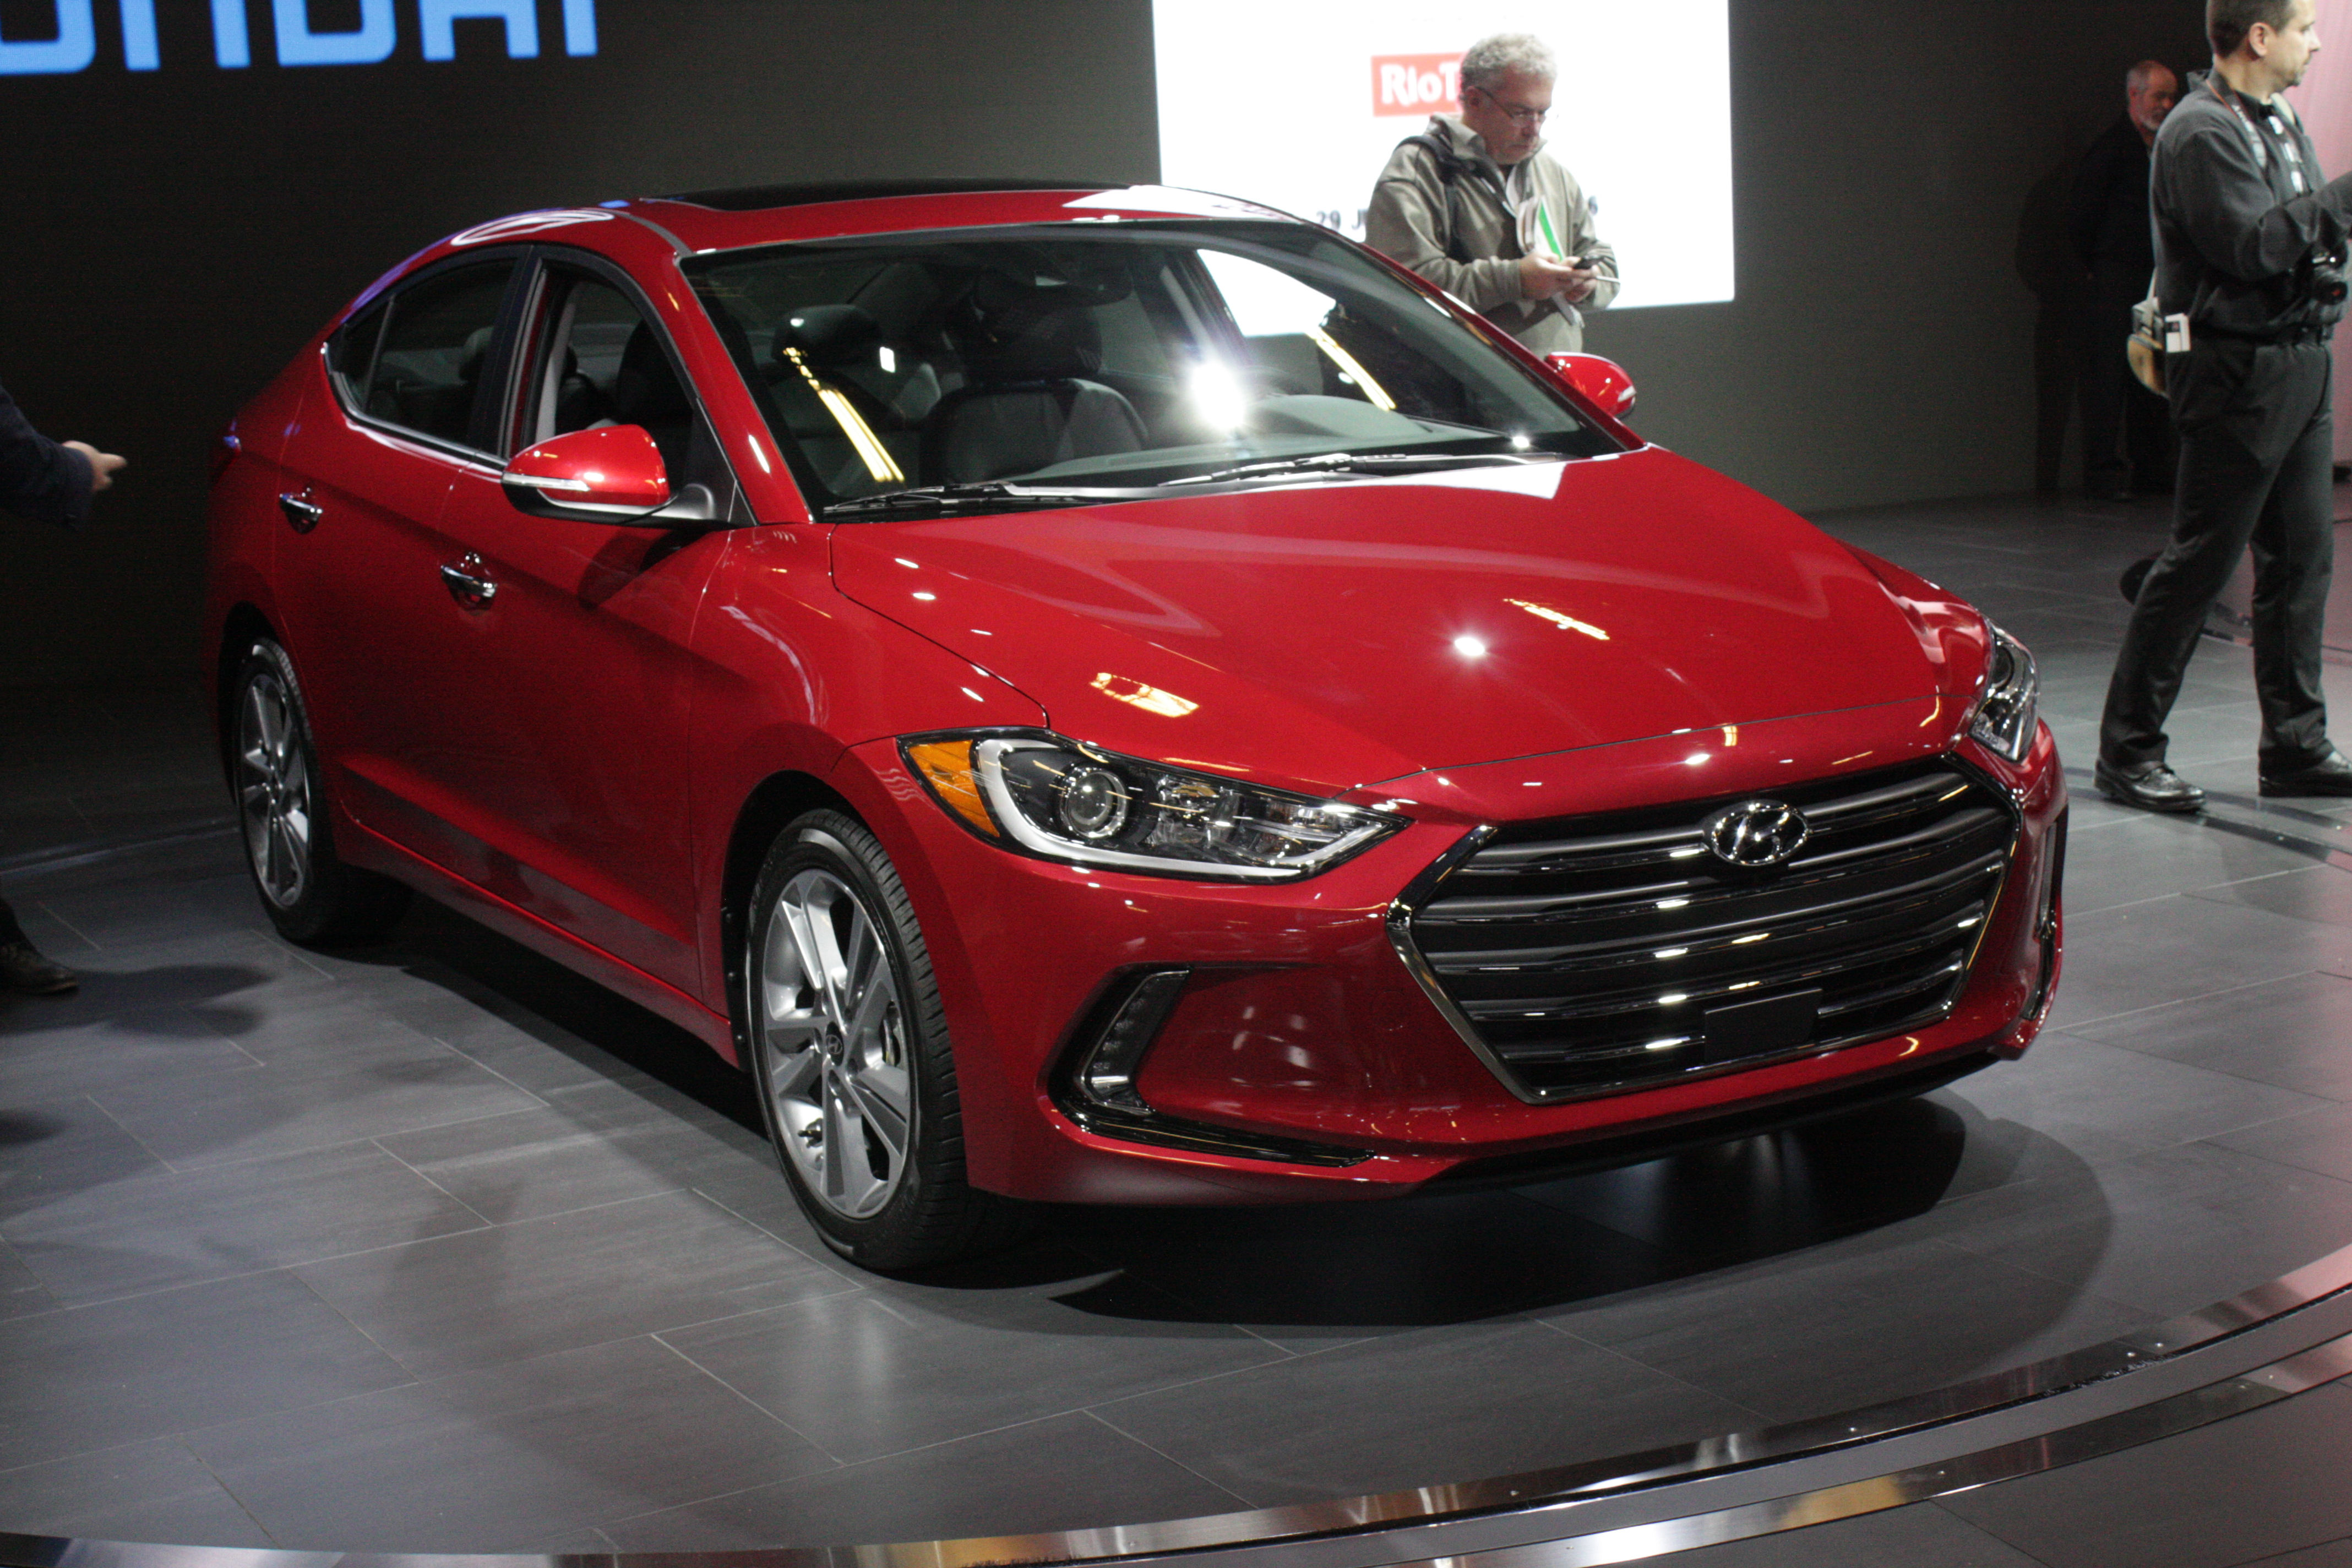 Another new compact comes from Hyundai, which showed the brand new 2017 Elantra sedan that once again brings big style at affordable pricing.